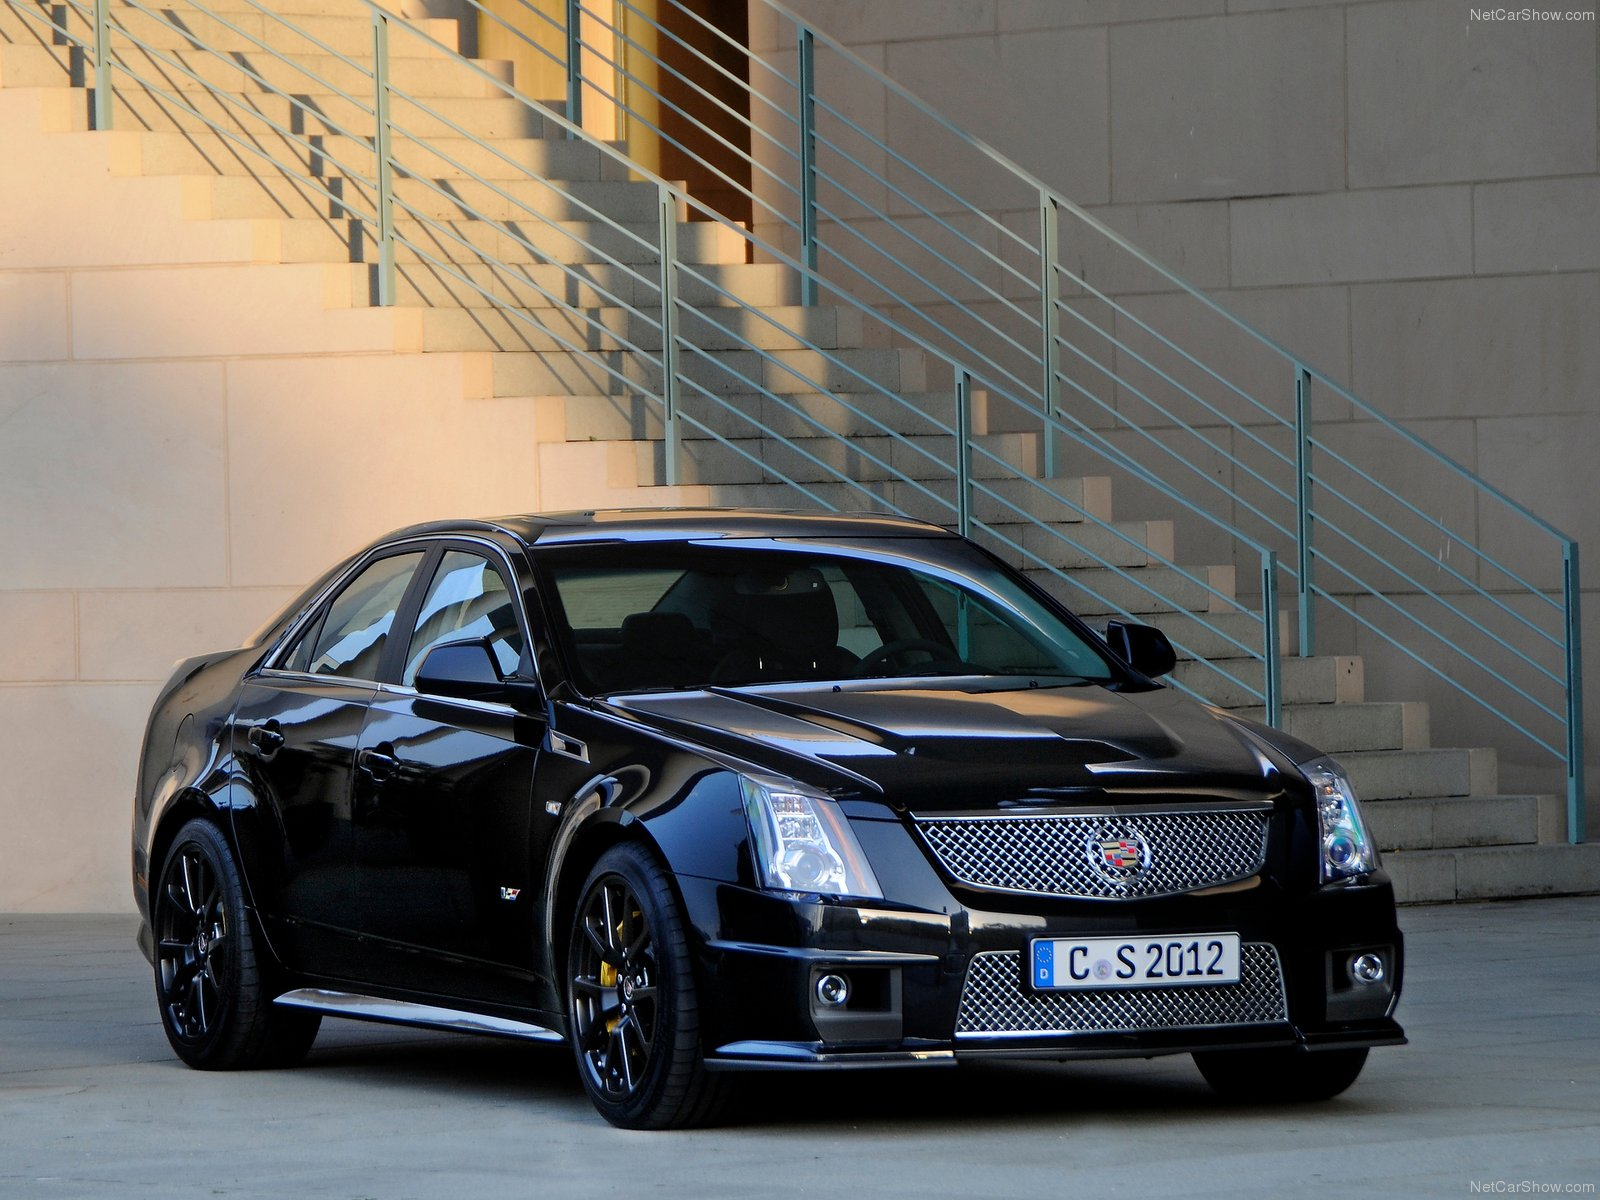 Tuning Cadillac Cts V Sedan 2010 Online Accessories And